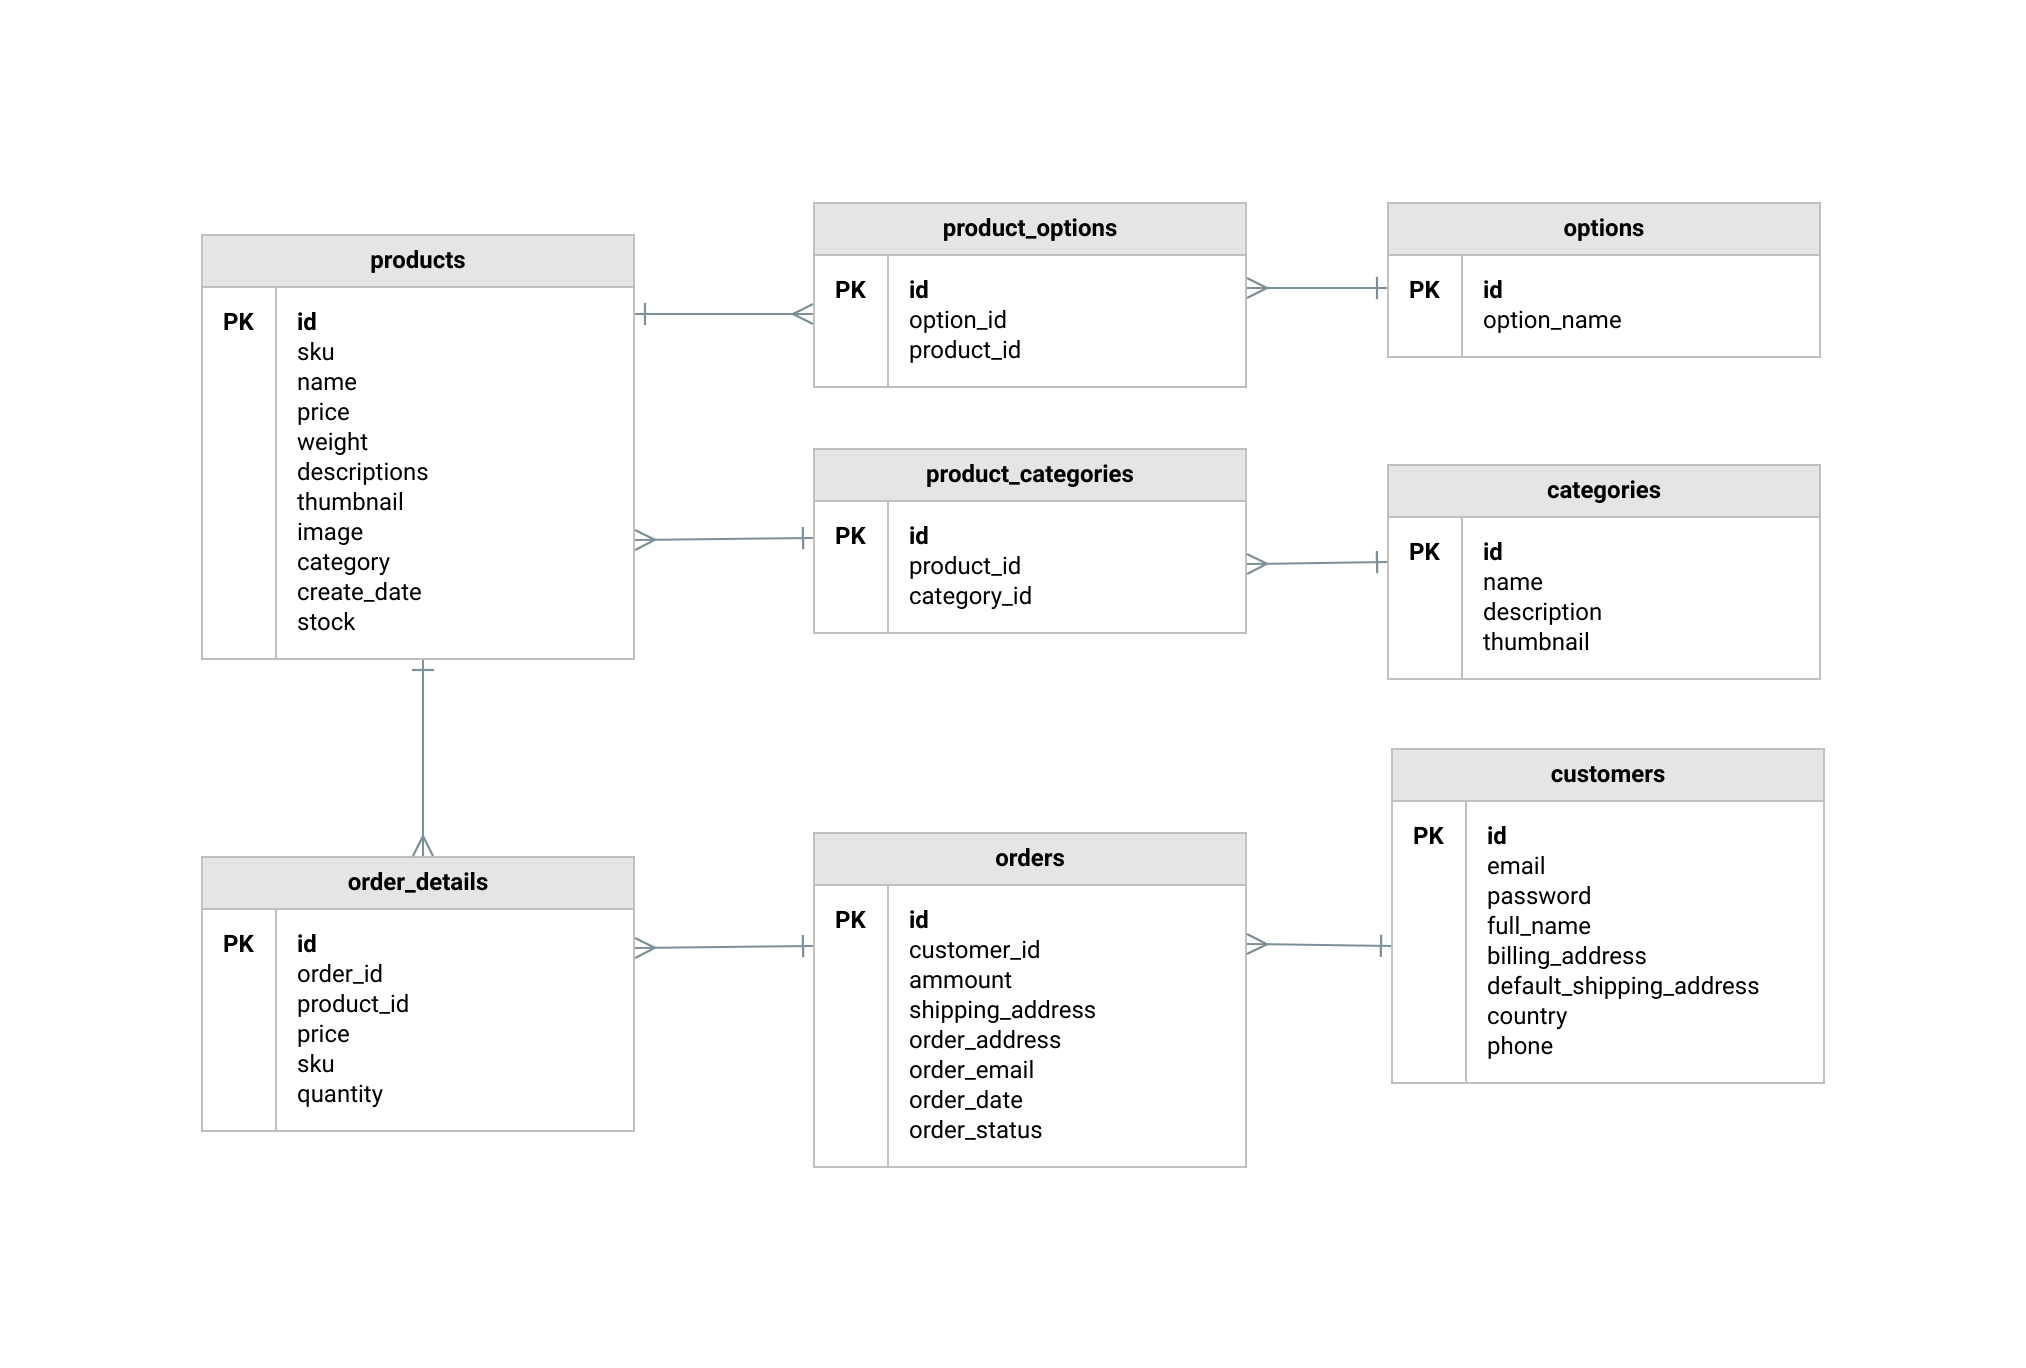 Ecommerce Database Diagram Template | Moqups in Er Mapping Examples